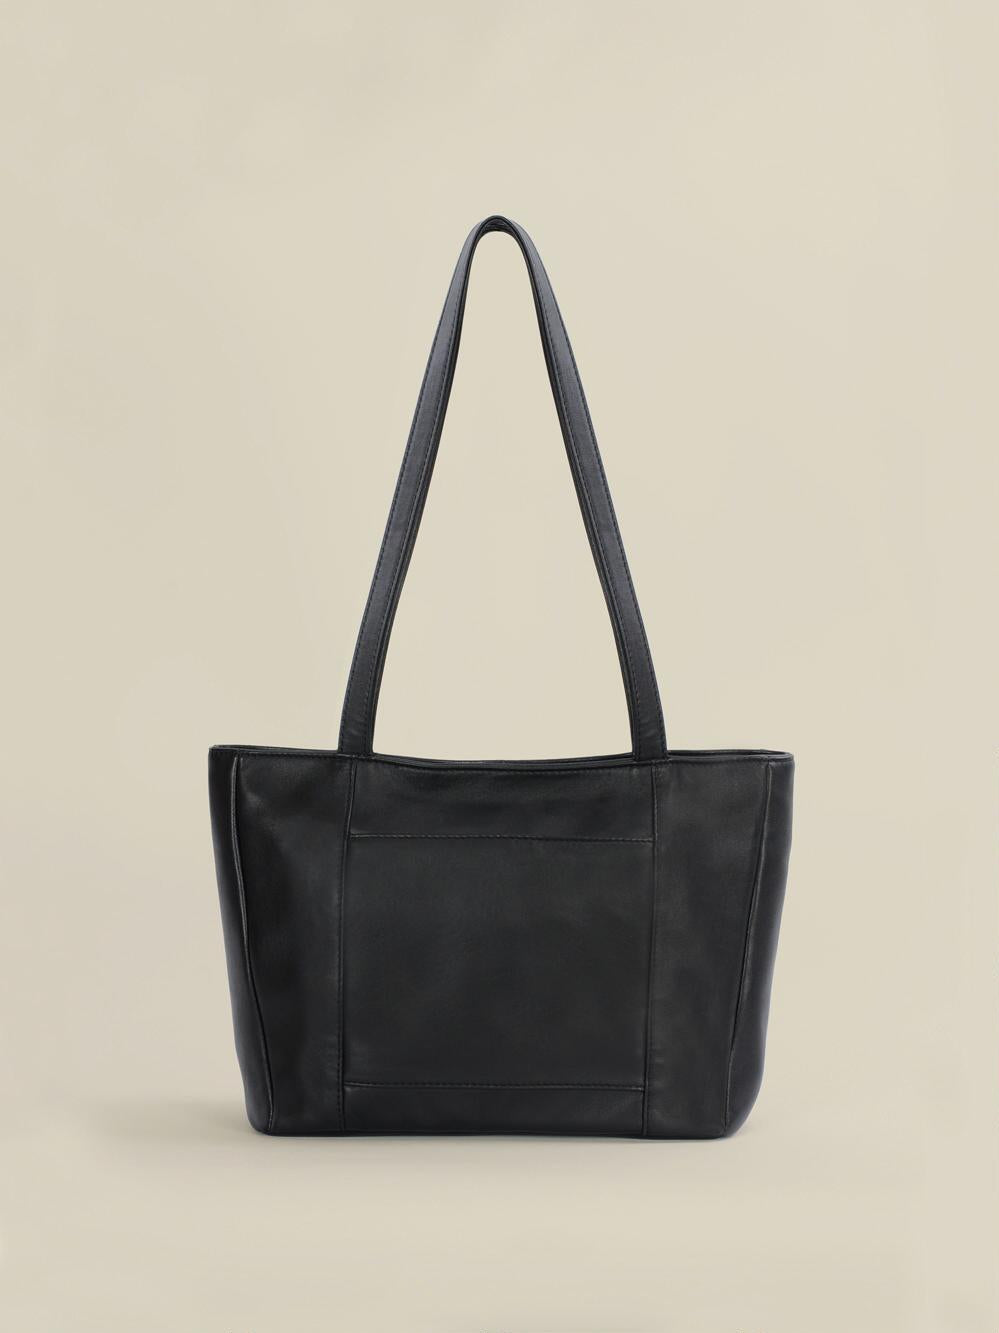 Women Simple Black Leather Handbag